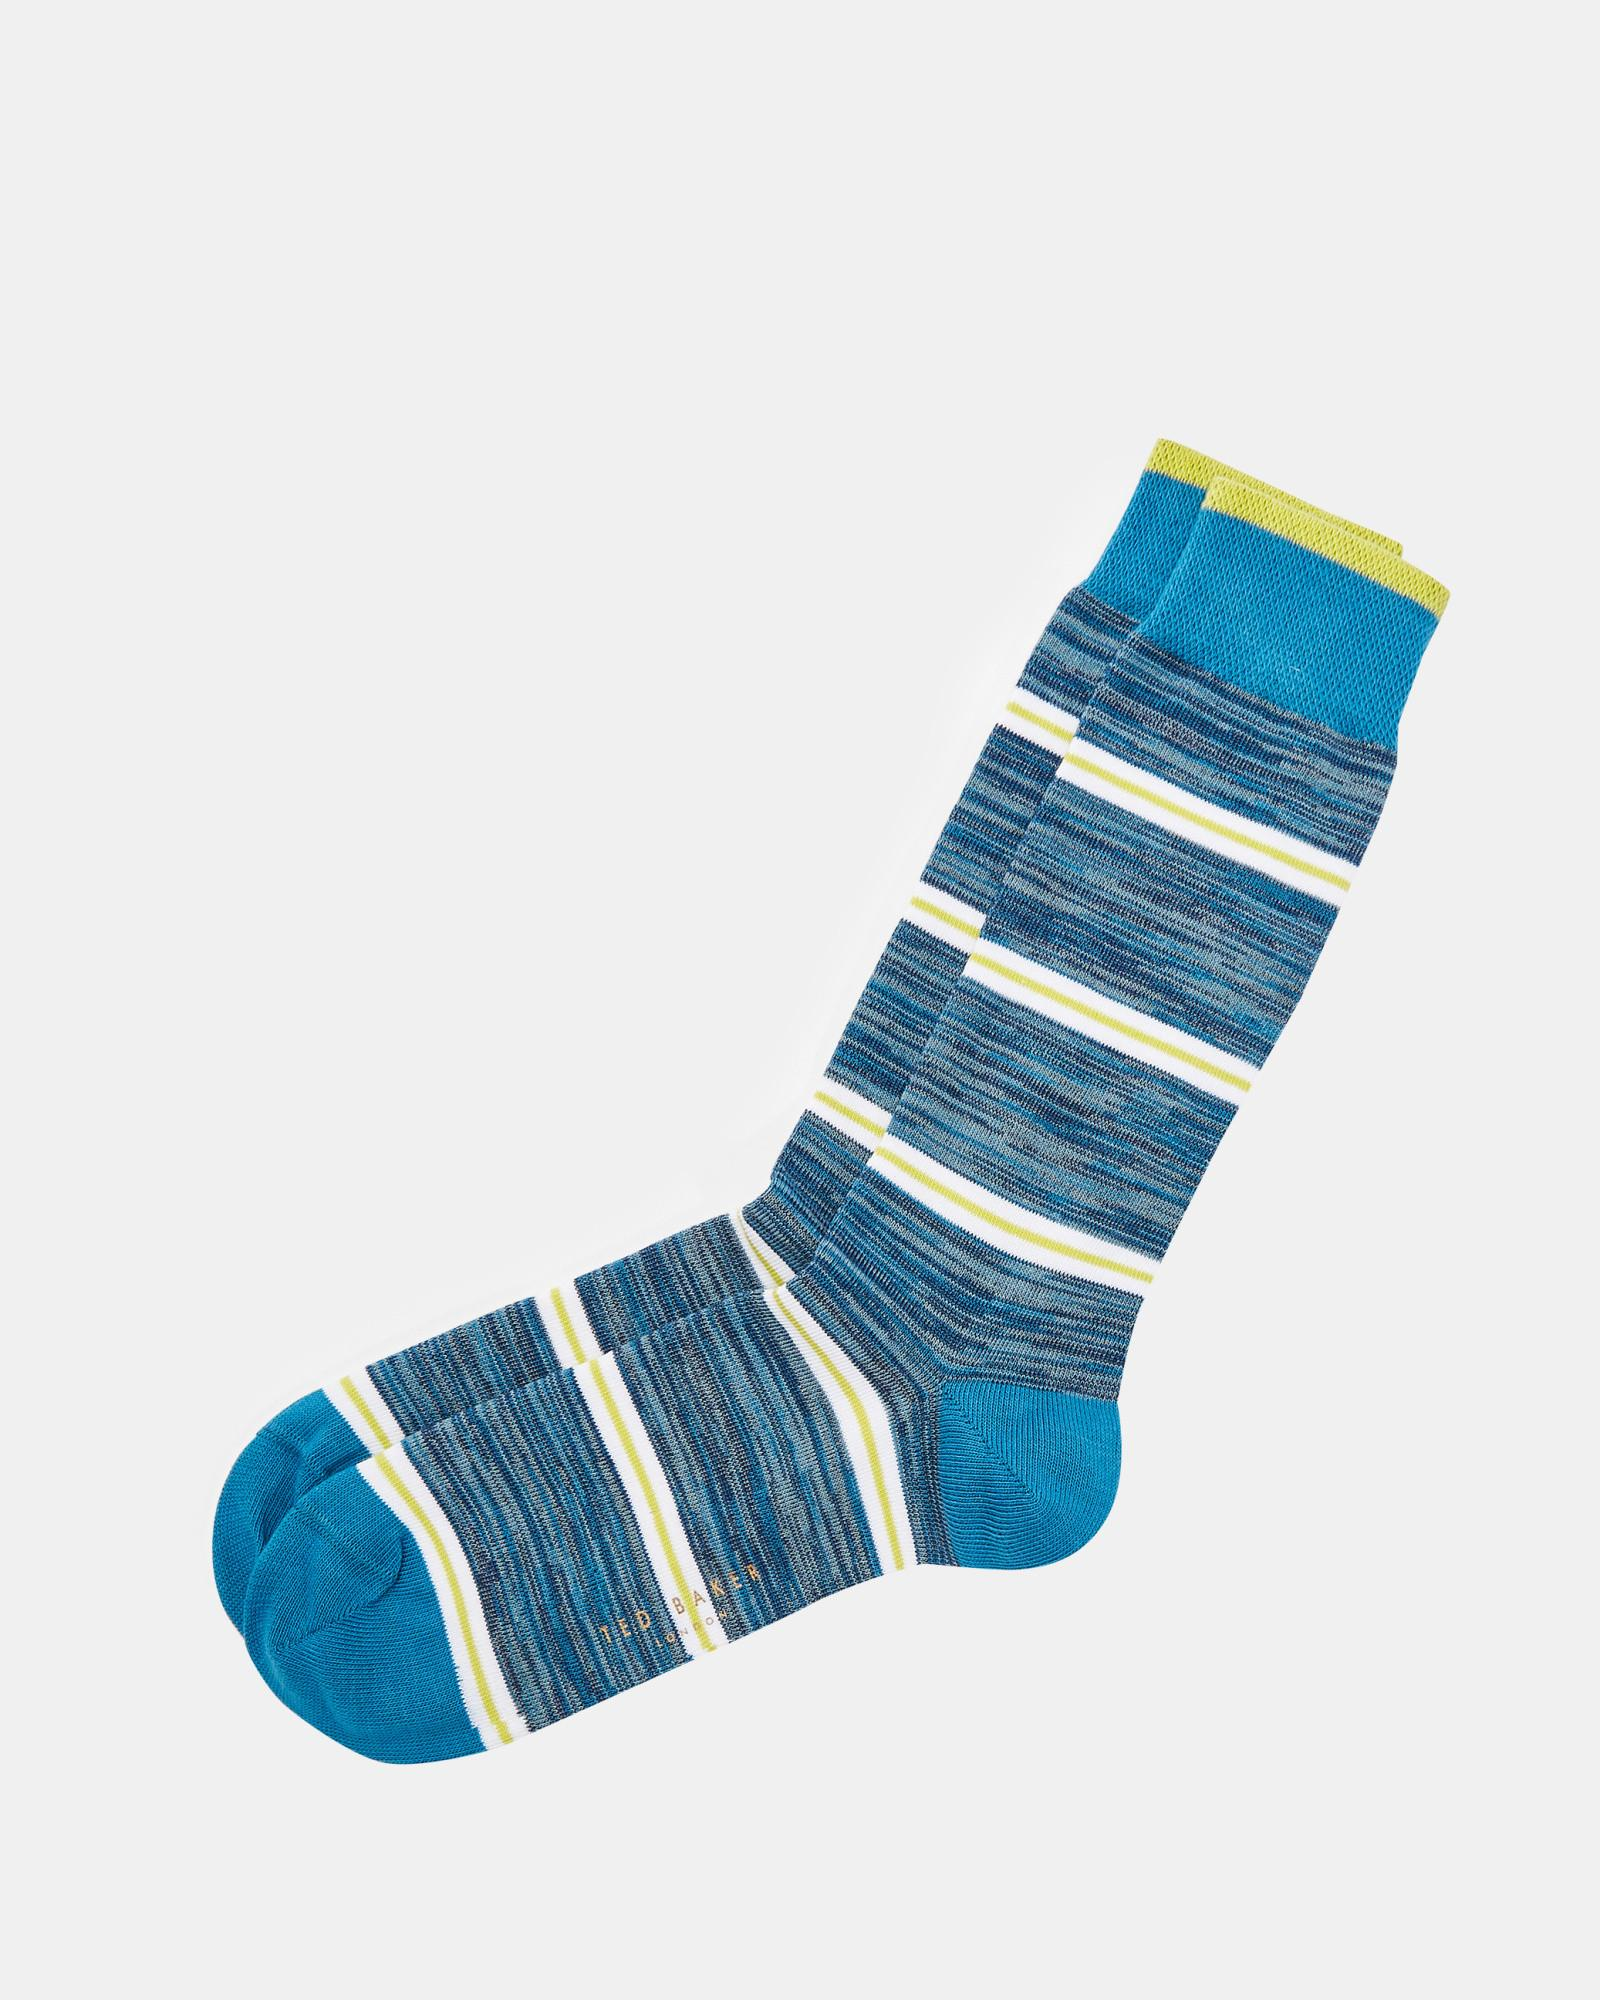 2a4435bc2 Lyst - Ted Baker Striped Cotton Socks in Blue for Men